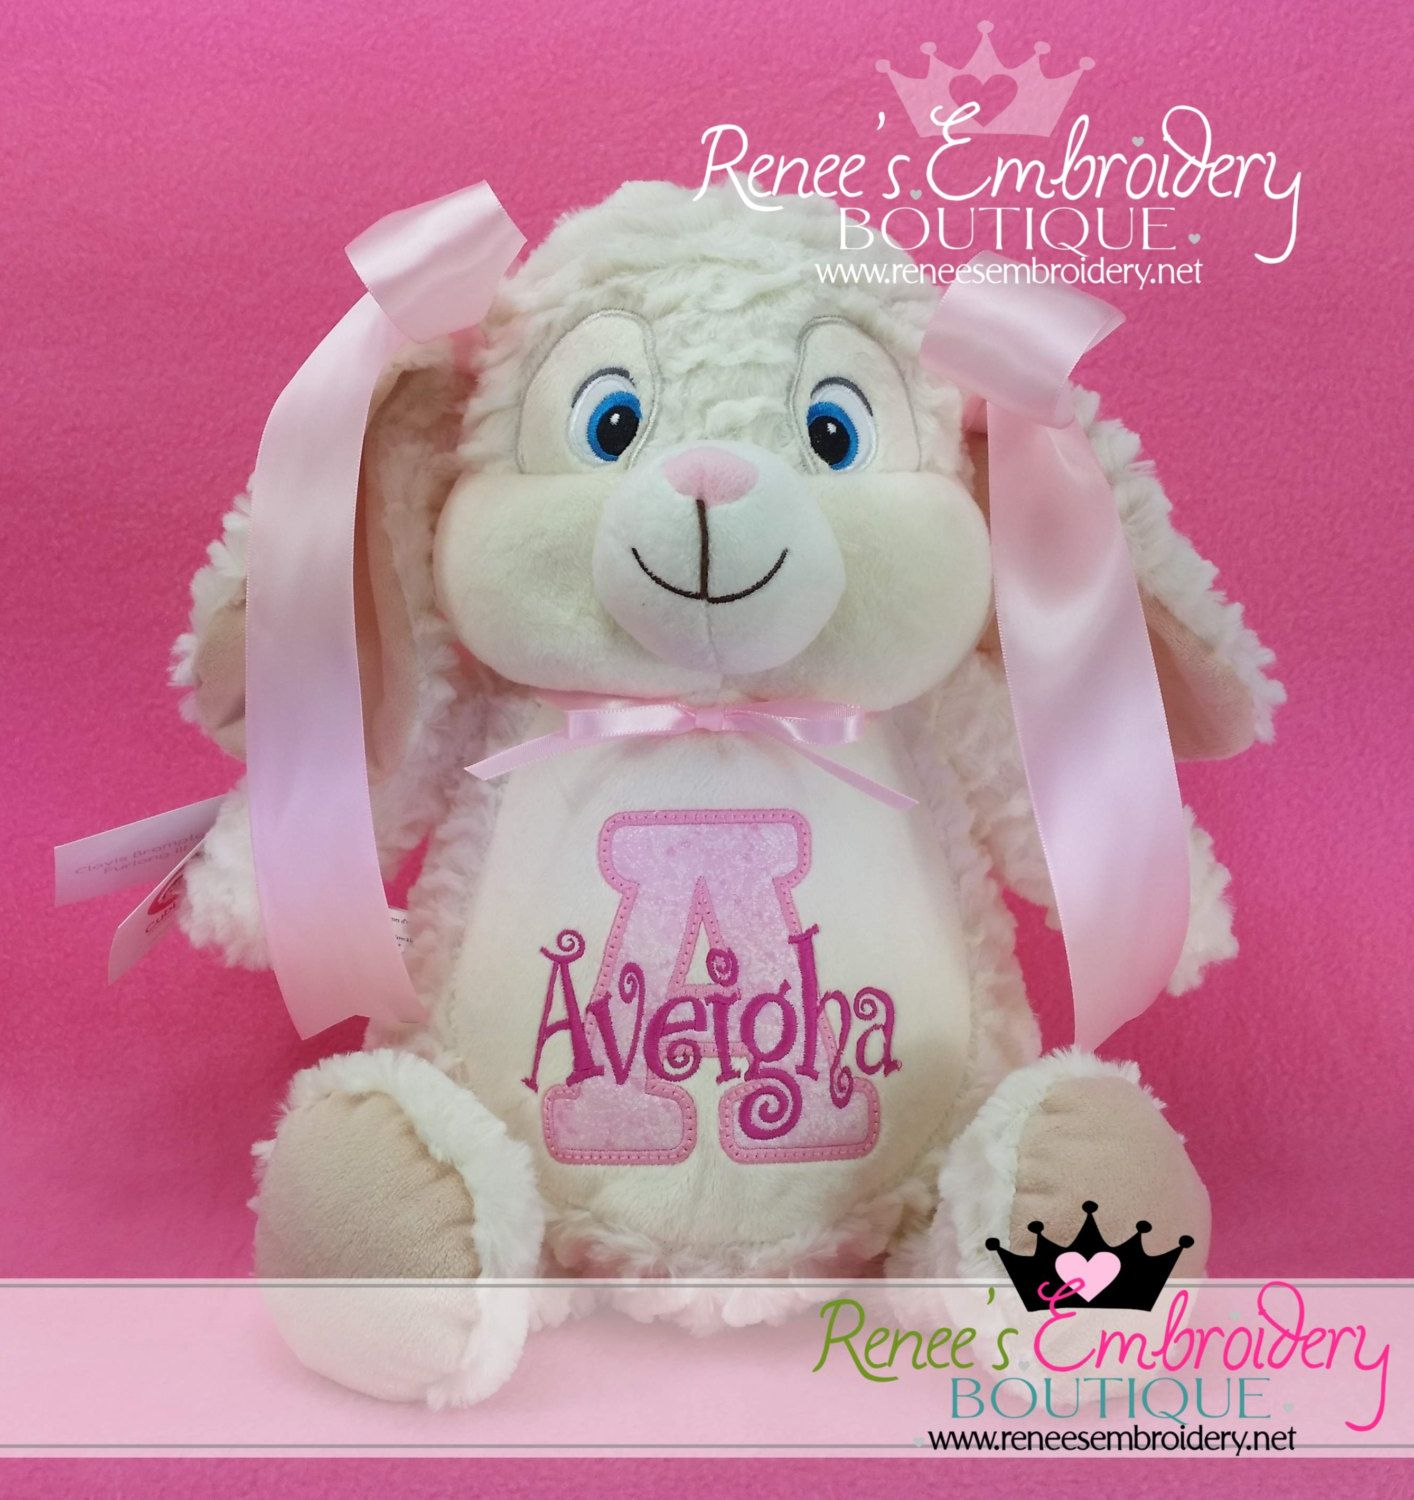 Personalized easter bunny stuffed rabbit birth announcement personalized baby gift new baby easter bunny rabbit birth announcement monogrammed stuffed animal keepsake by reneesembroidery negle Gallery